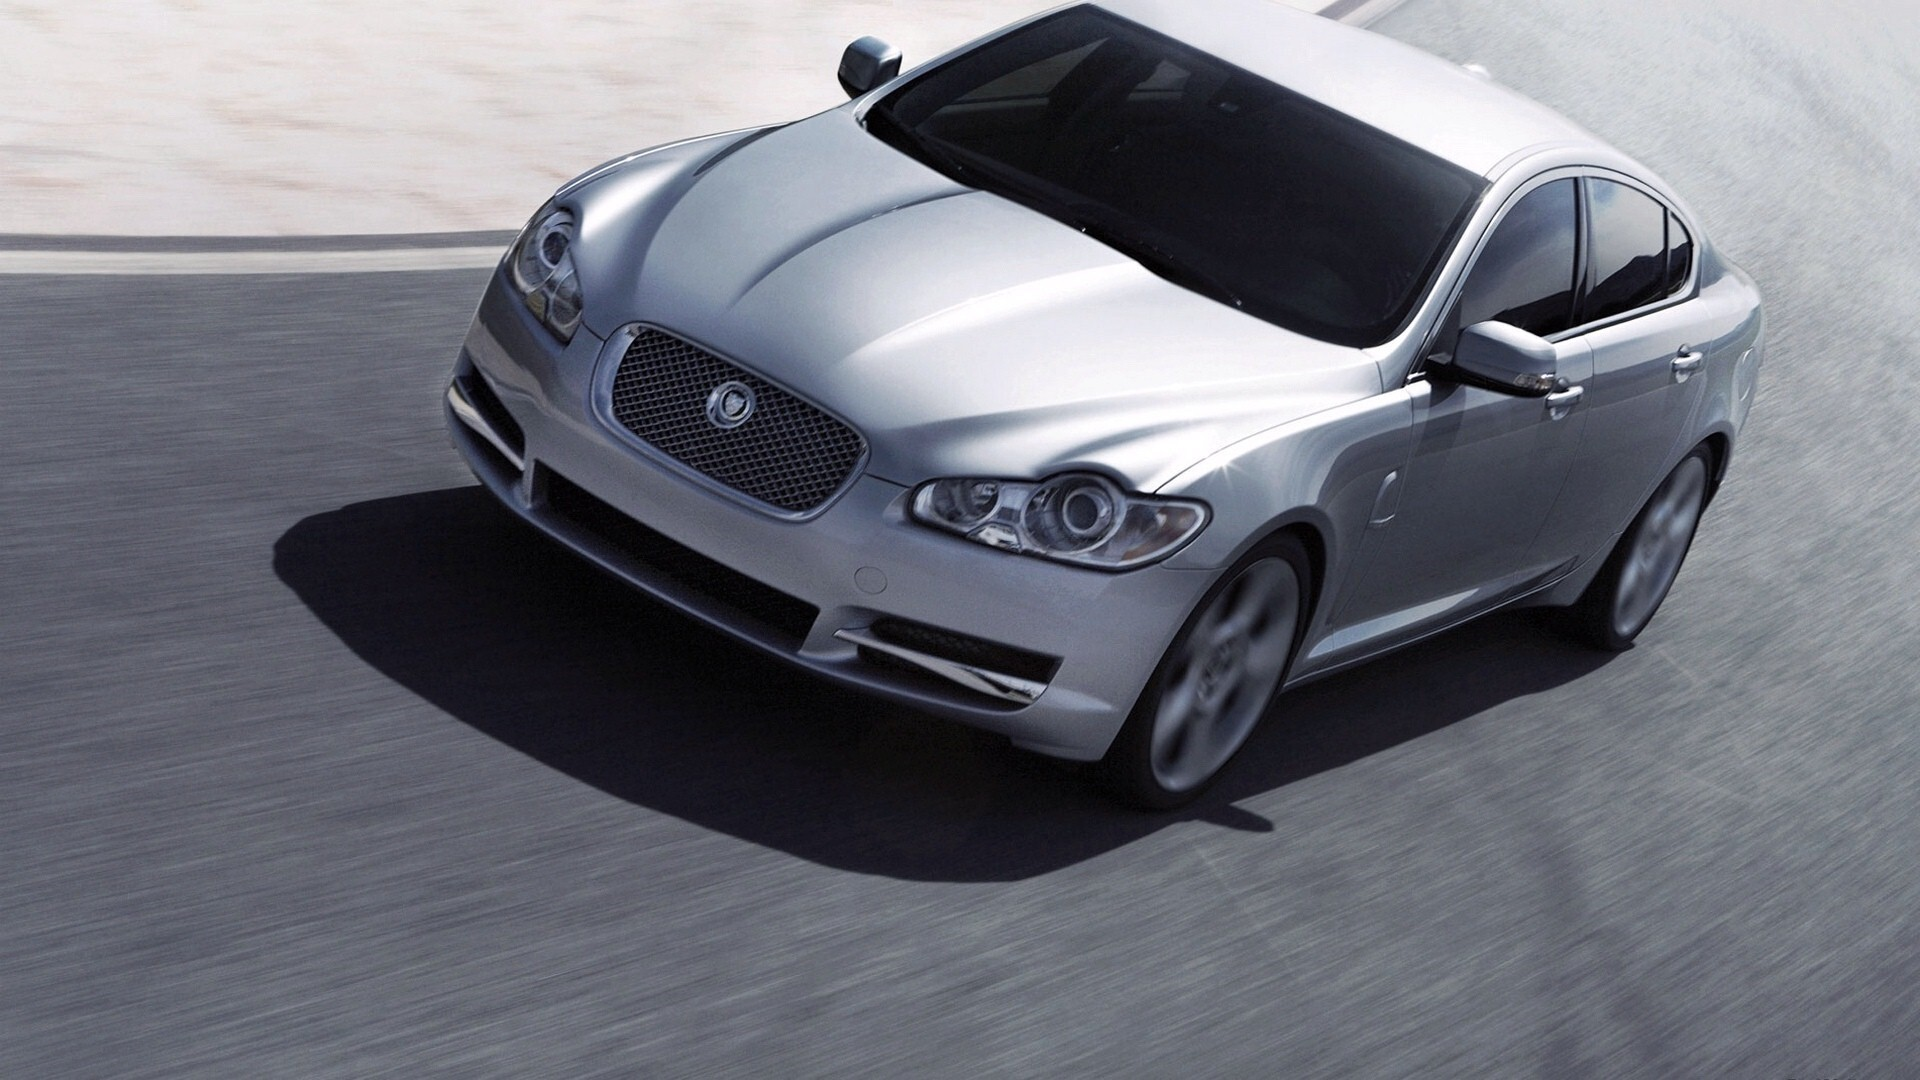 Jaguar Car Wallpaper Hd Wallpapers